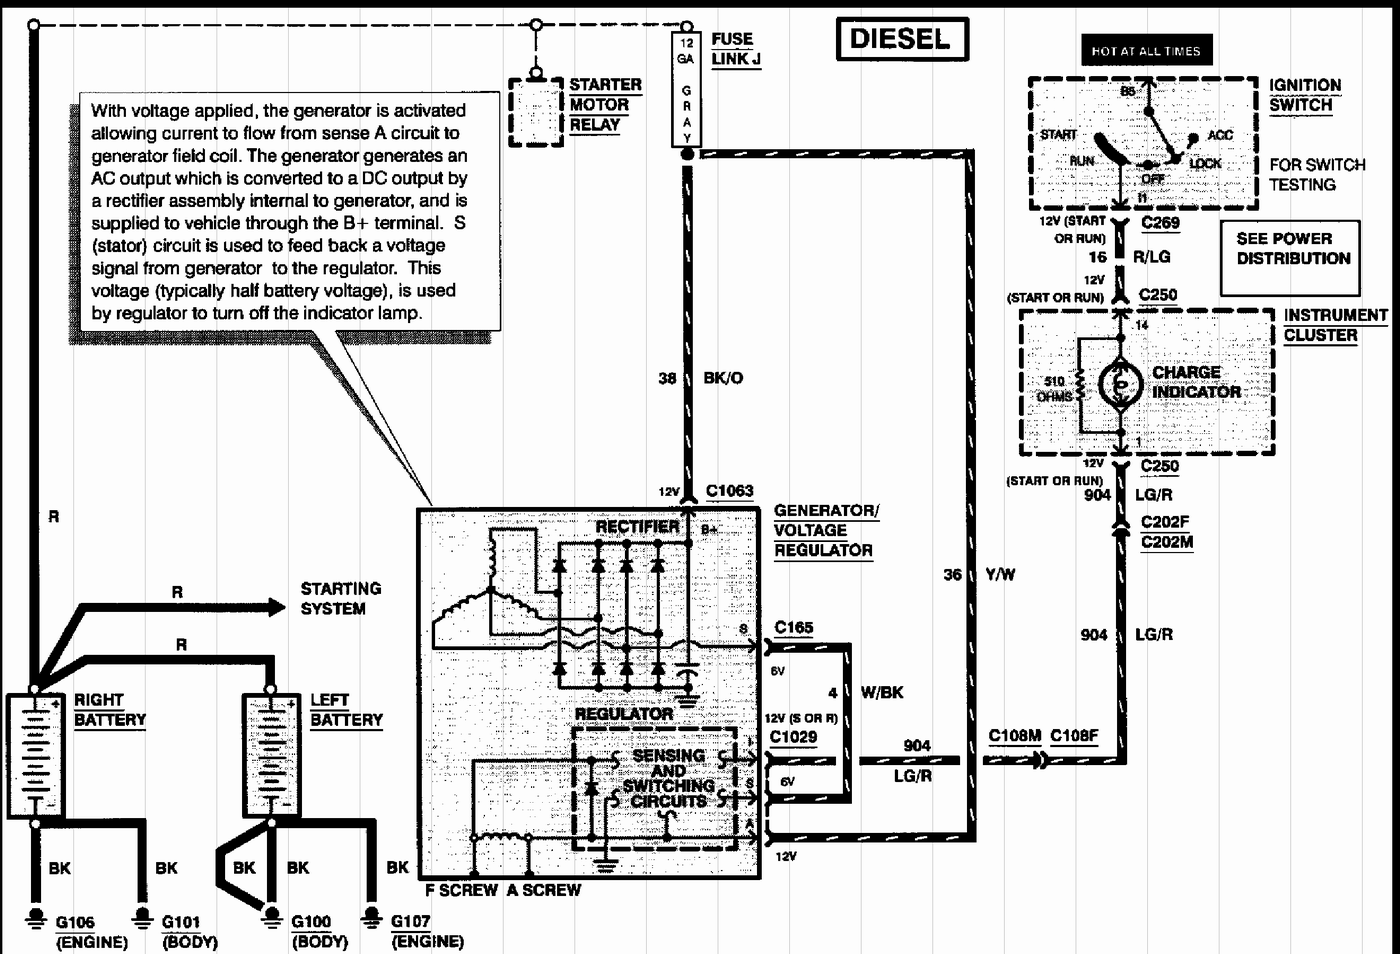 i need a wiring diagram for a 97 f350 7 3 powerstroke with e4od rh pinterest com E40D Wiring-Diagram 1991 Ford E 350 E4OD Wiring-Diagram